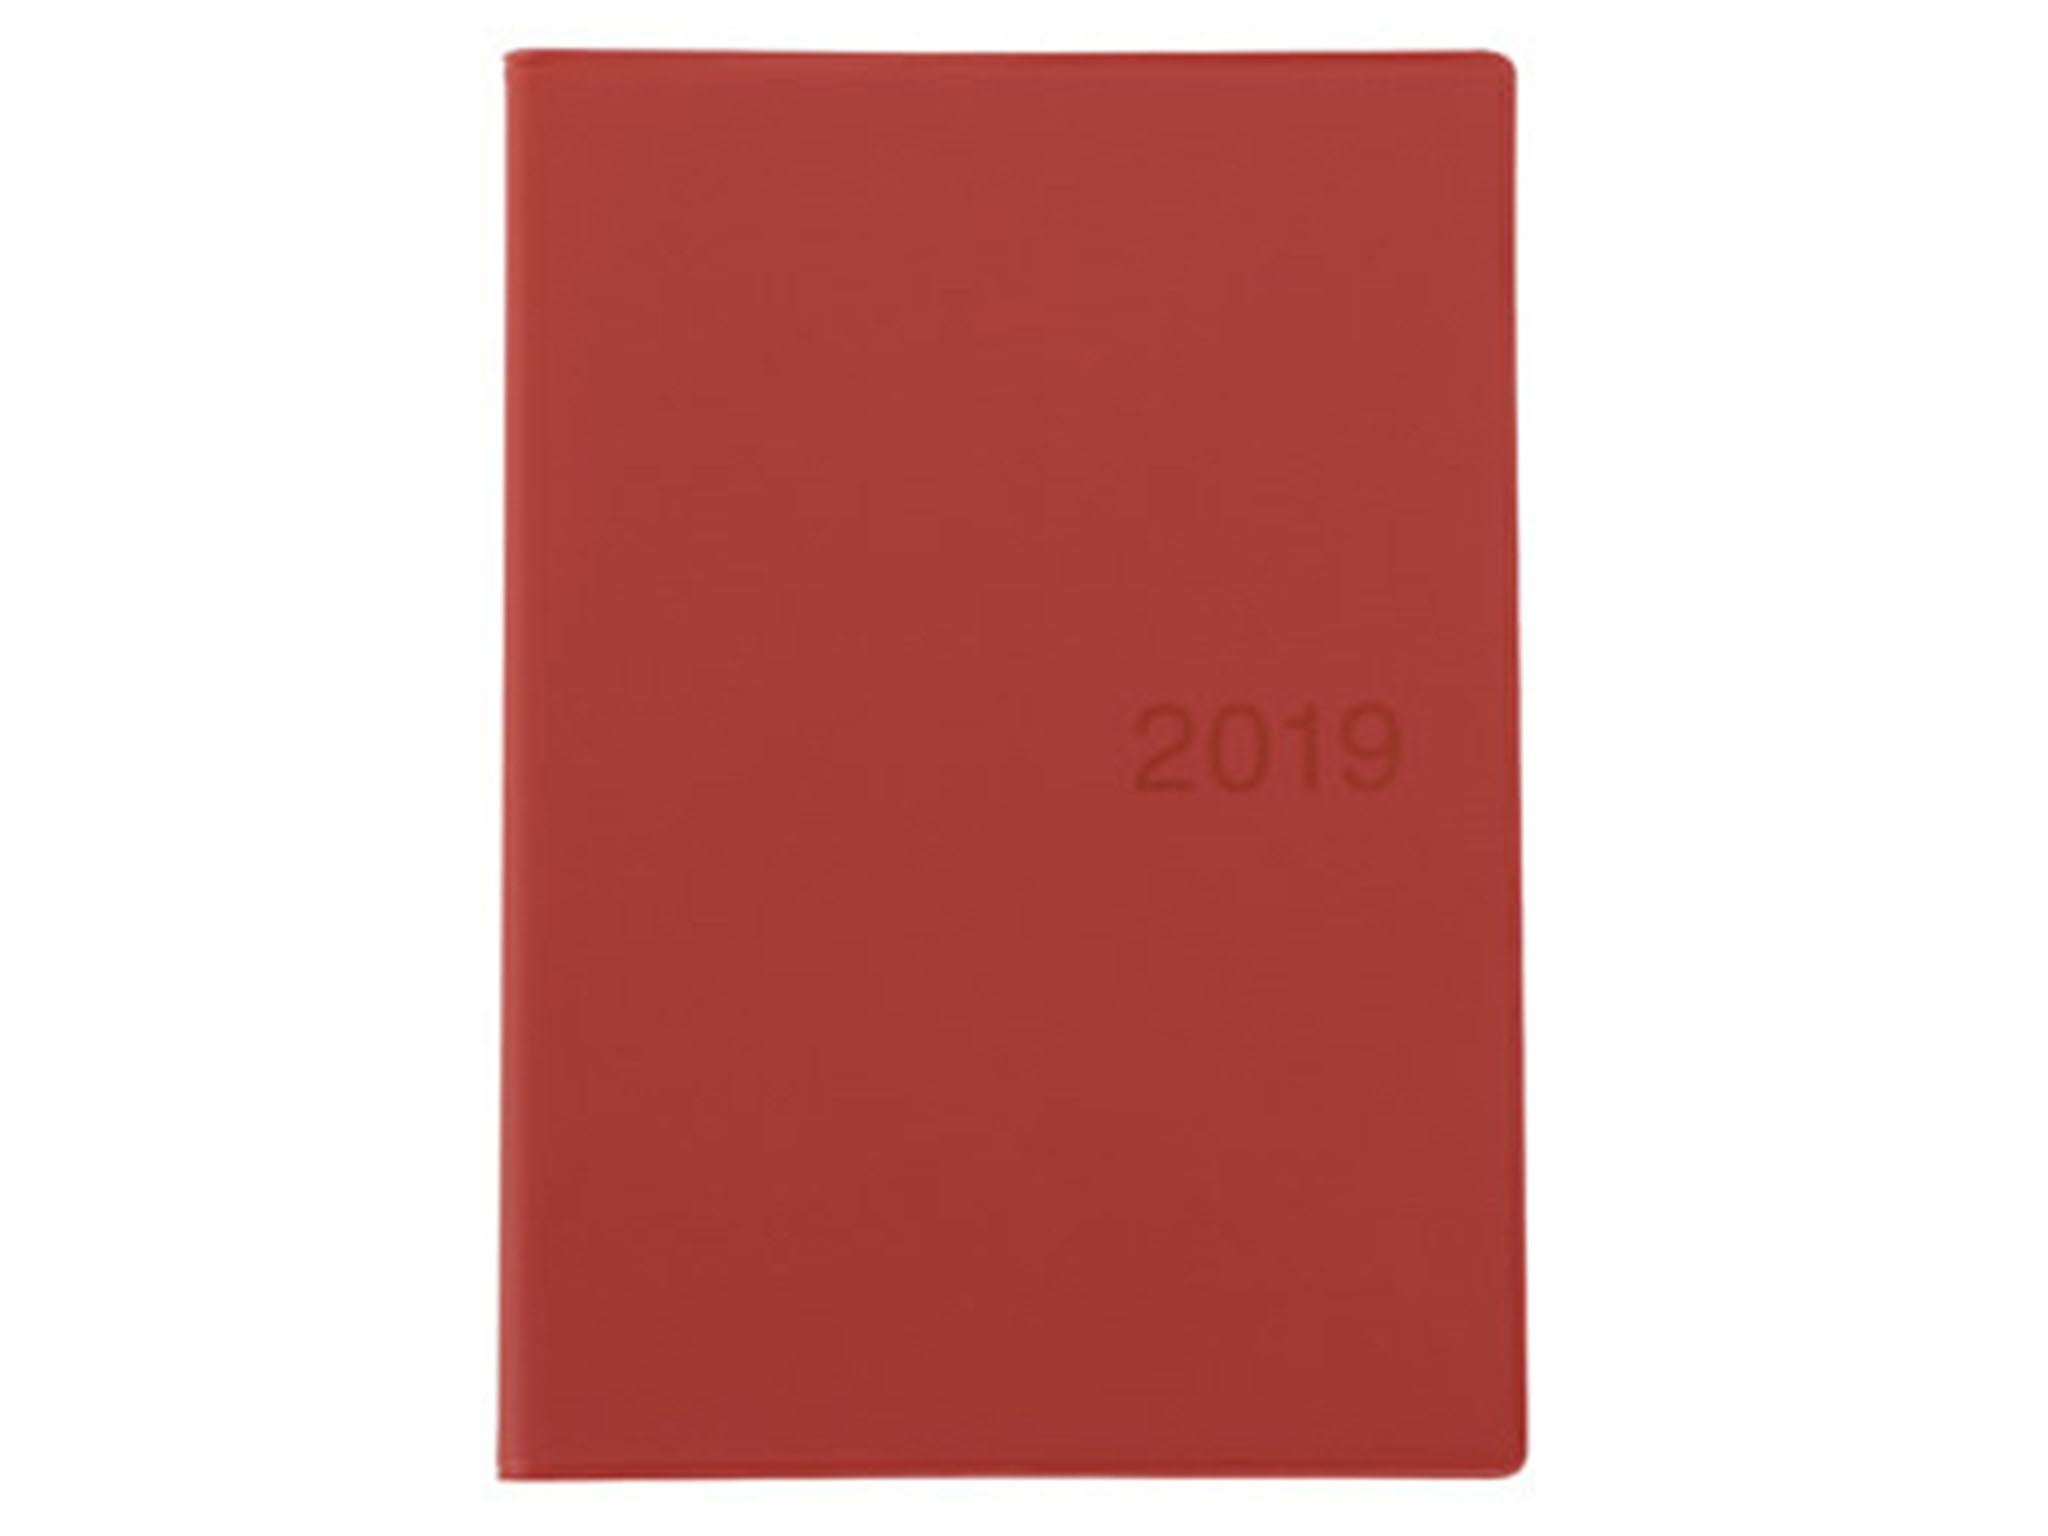 10 Best Planners For 2019 The Independent